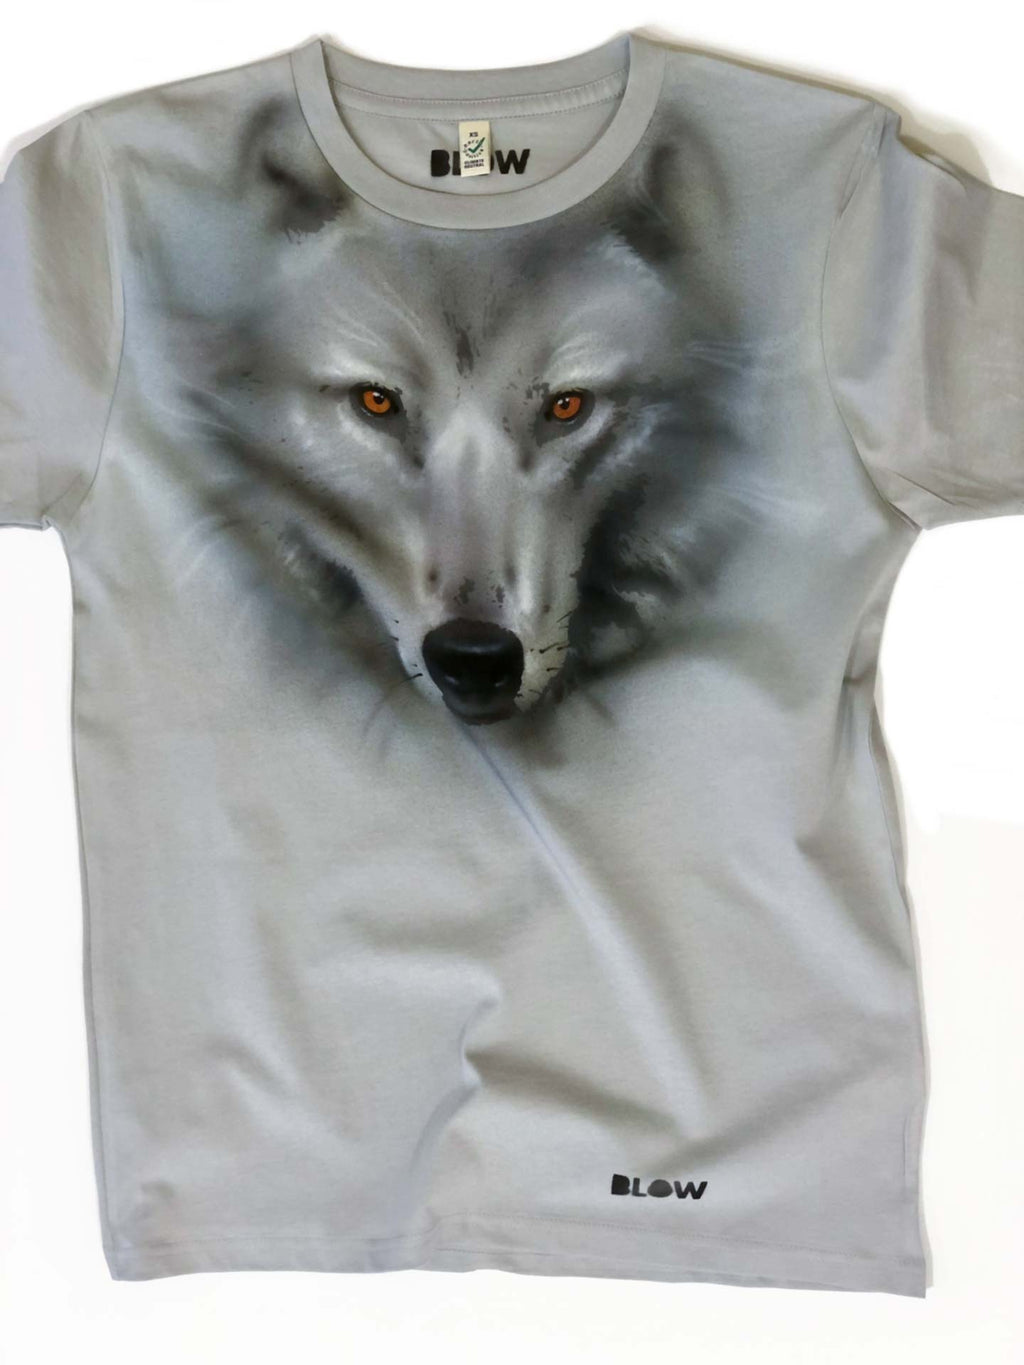 LOBO - Unisex premium short sleeve t-shirt - BLOW London